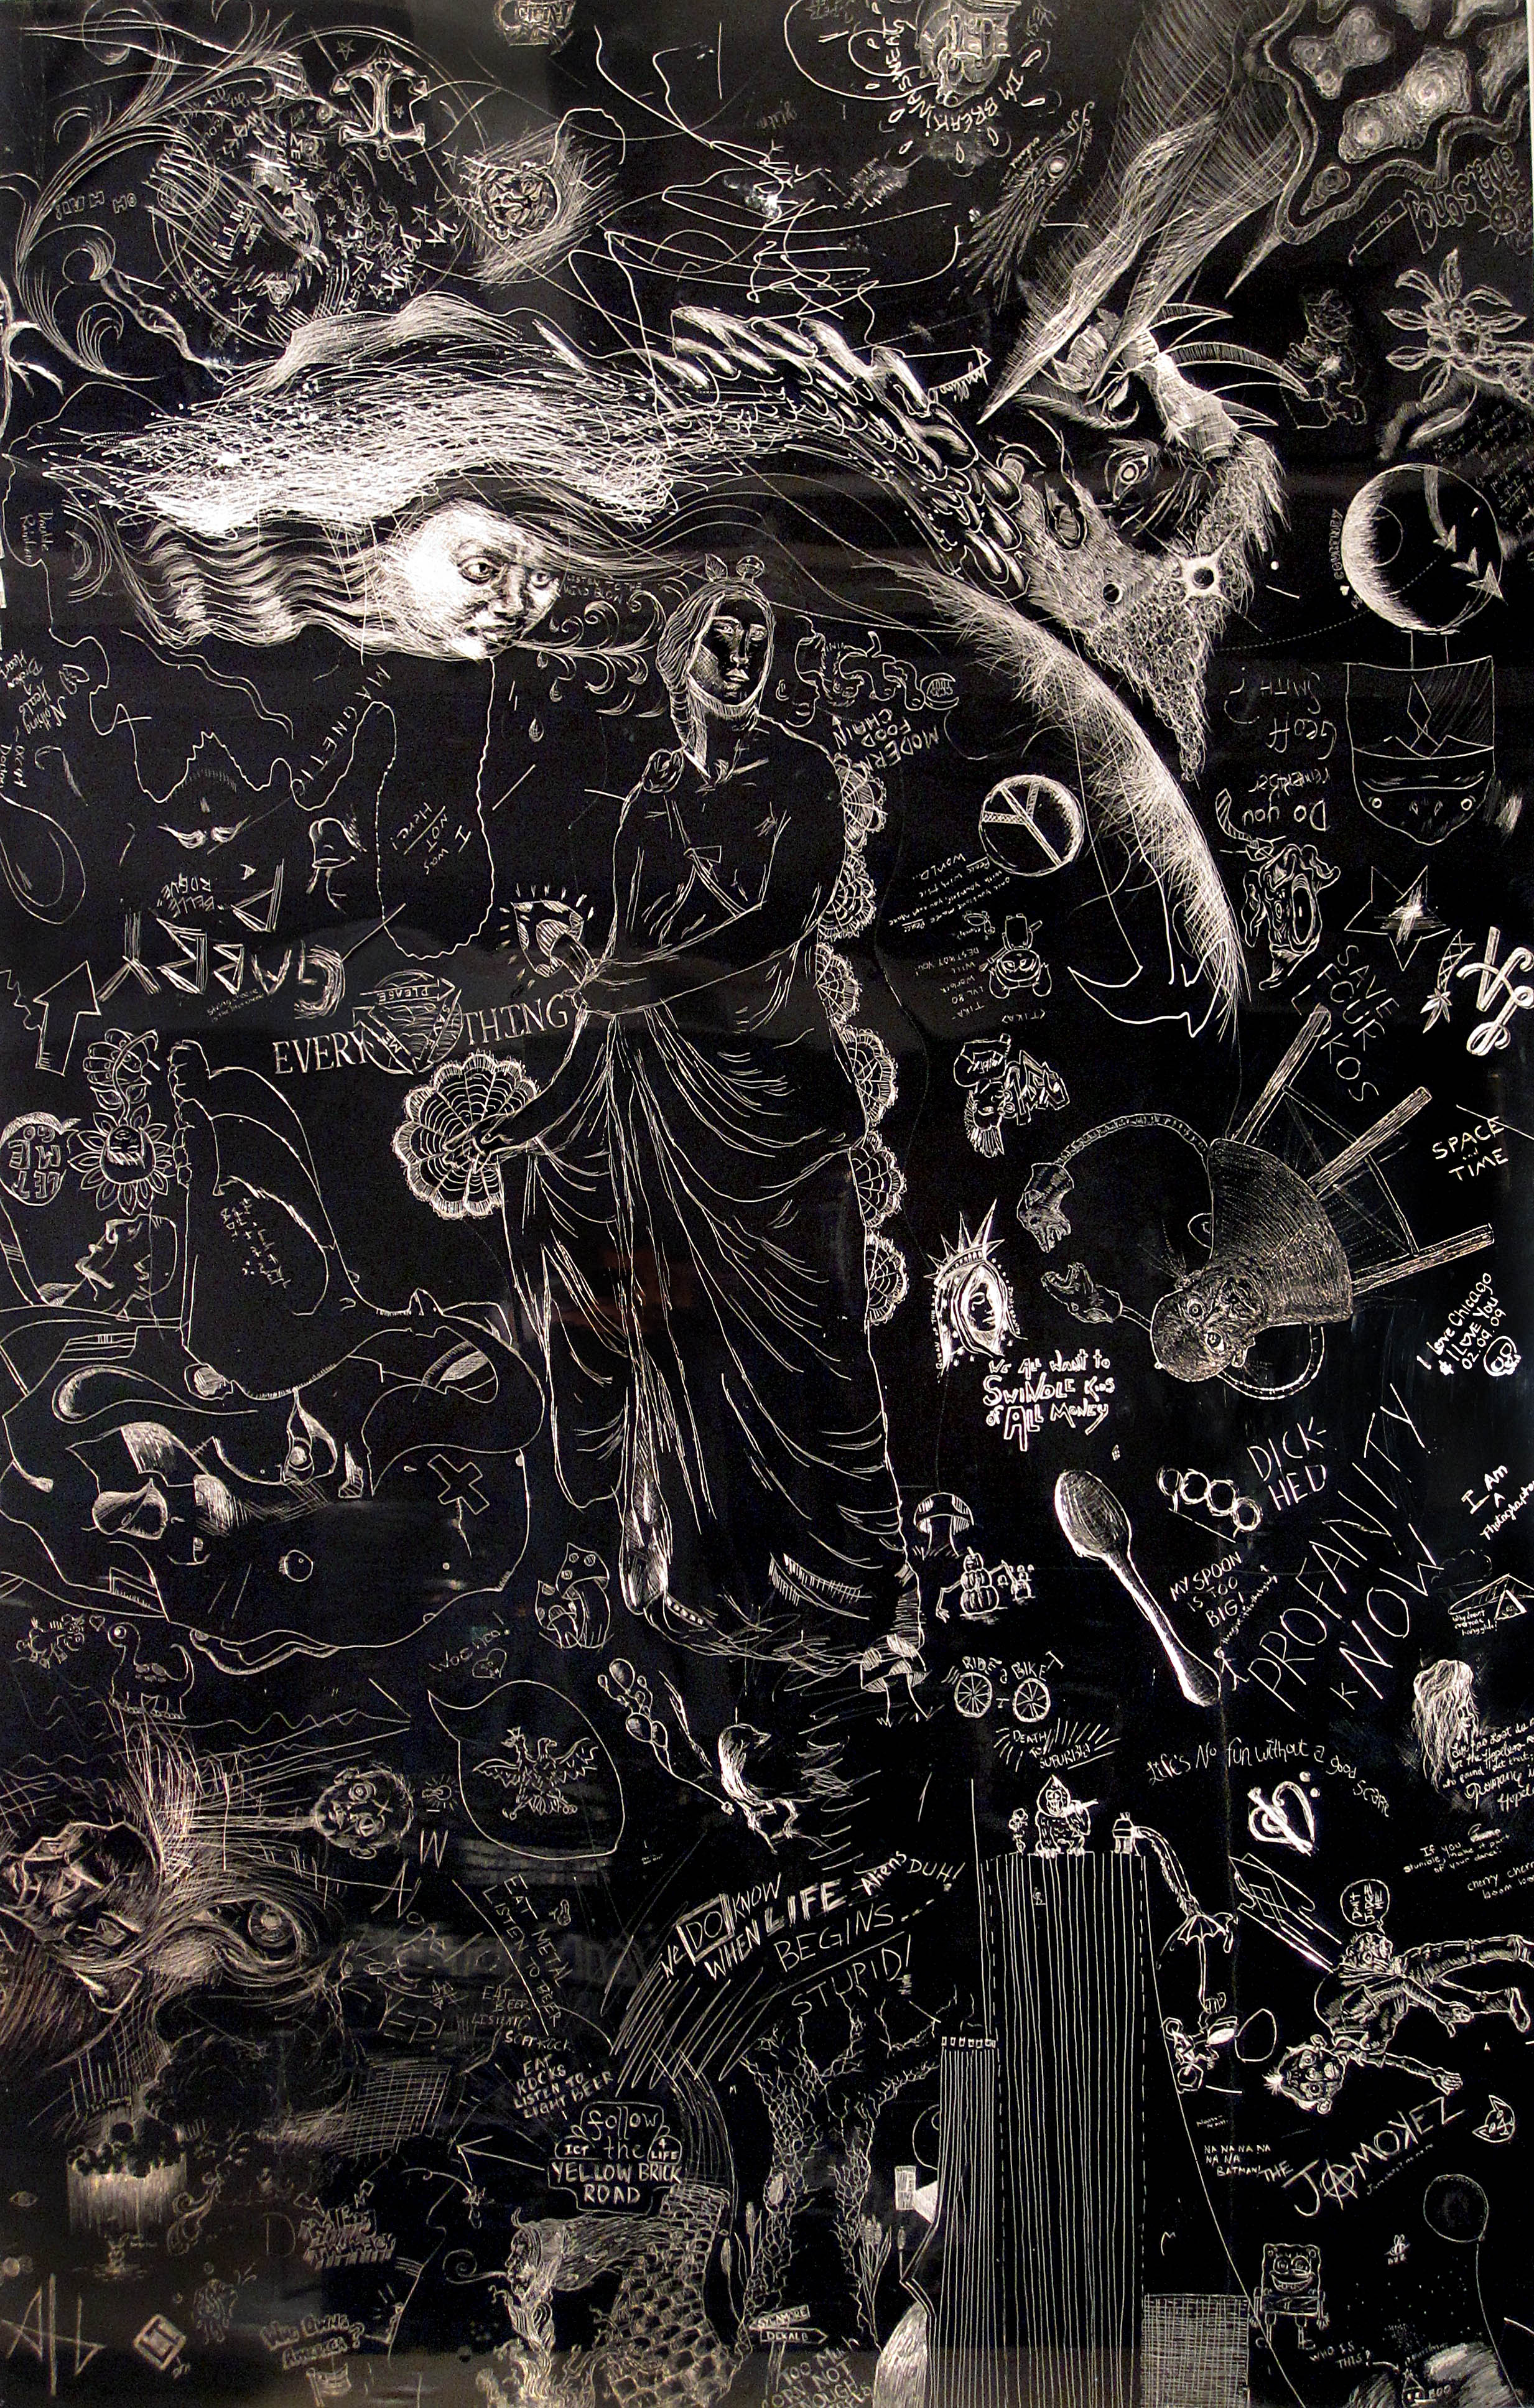 Disfunction and repair, Collaborative drawing at NIU School of Art and Design, Incised aluminum with baked enamel finish, 60 X 48 inches, 2010